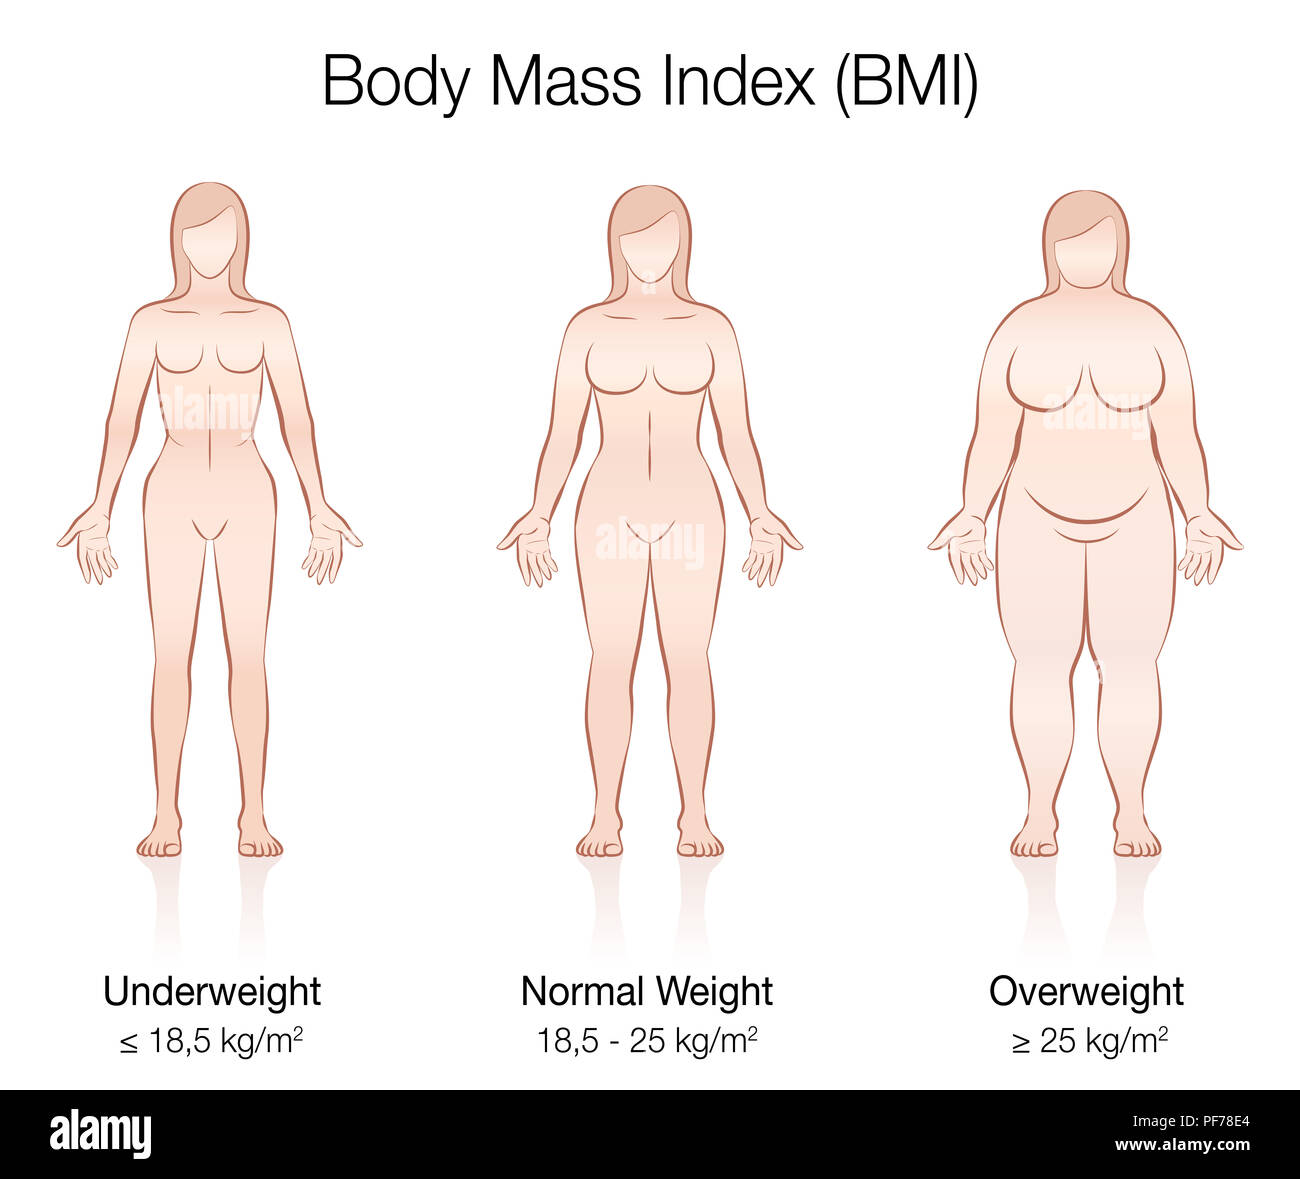 Body Mass Index Bmi Underweight Normal Weight And Overweight Female Body Illustration Of Three Women With Different Anatomy Stock Photo Alamy